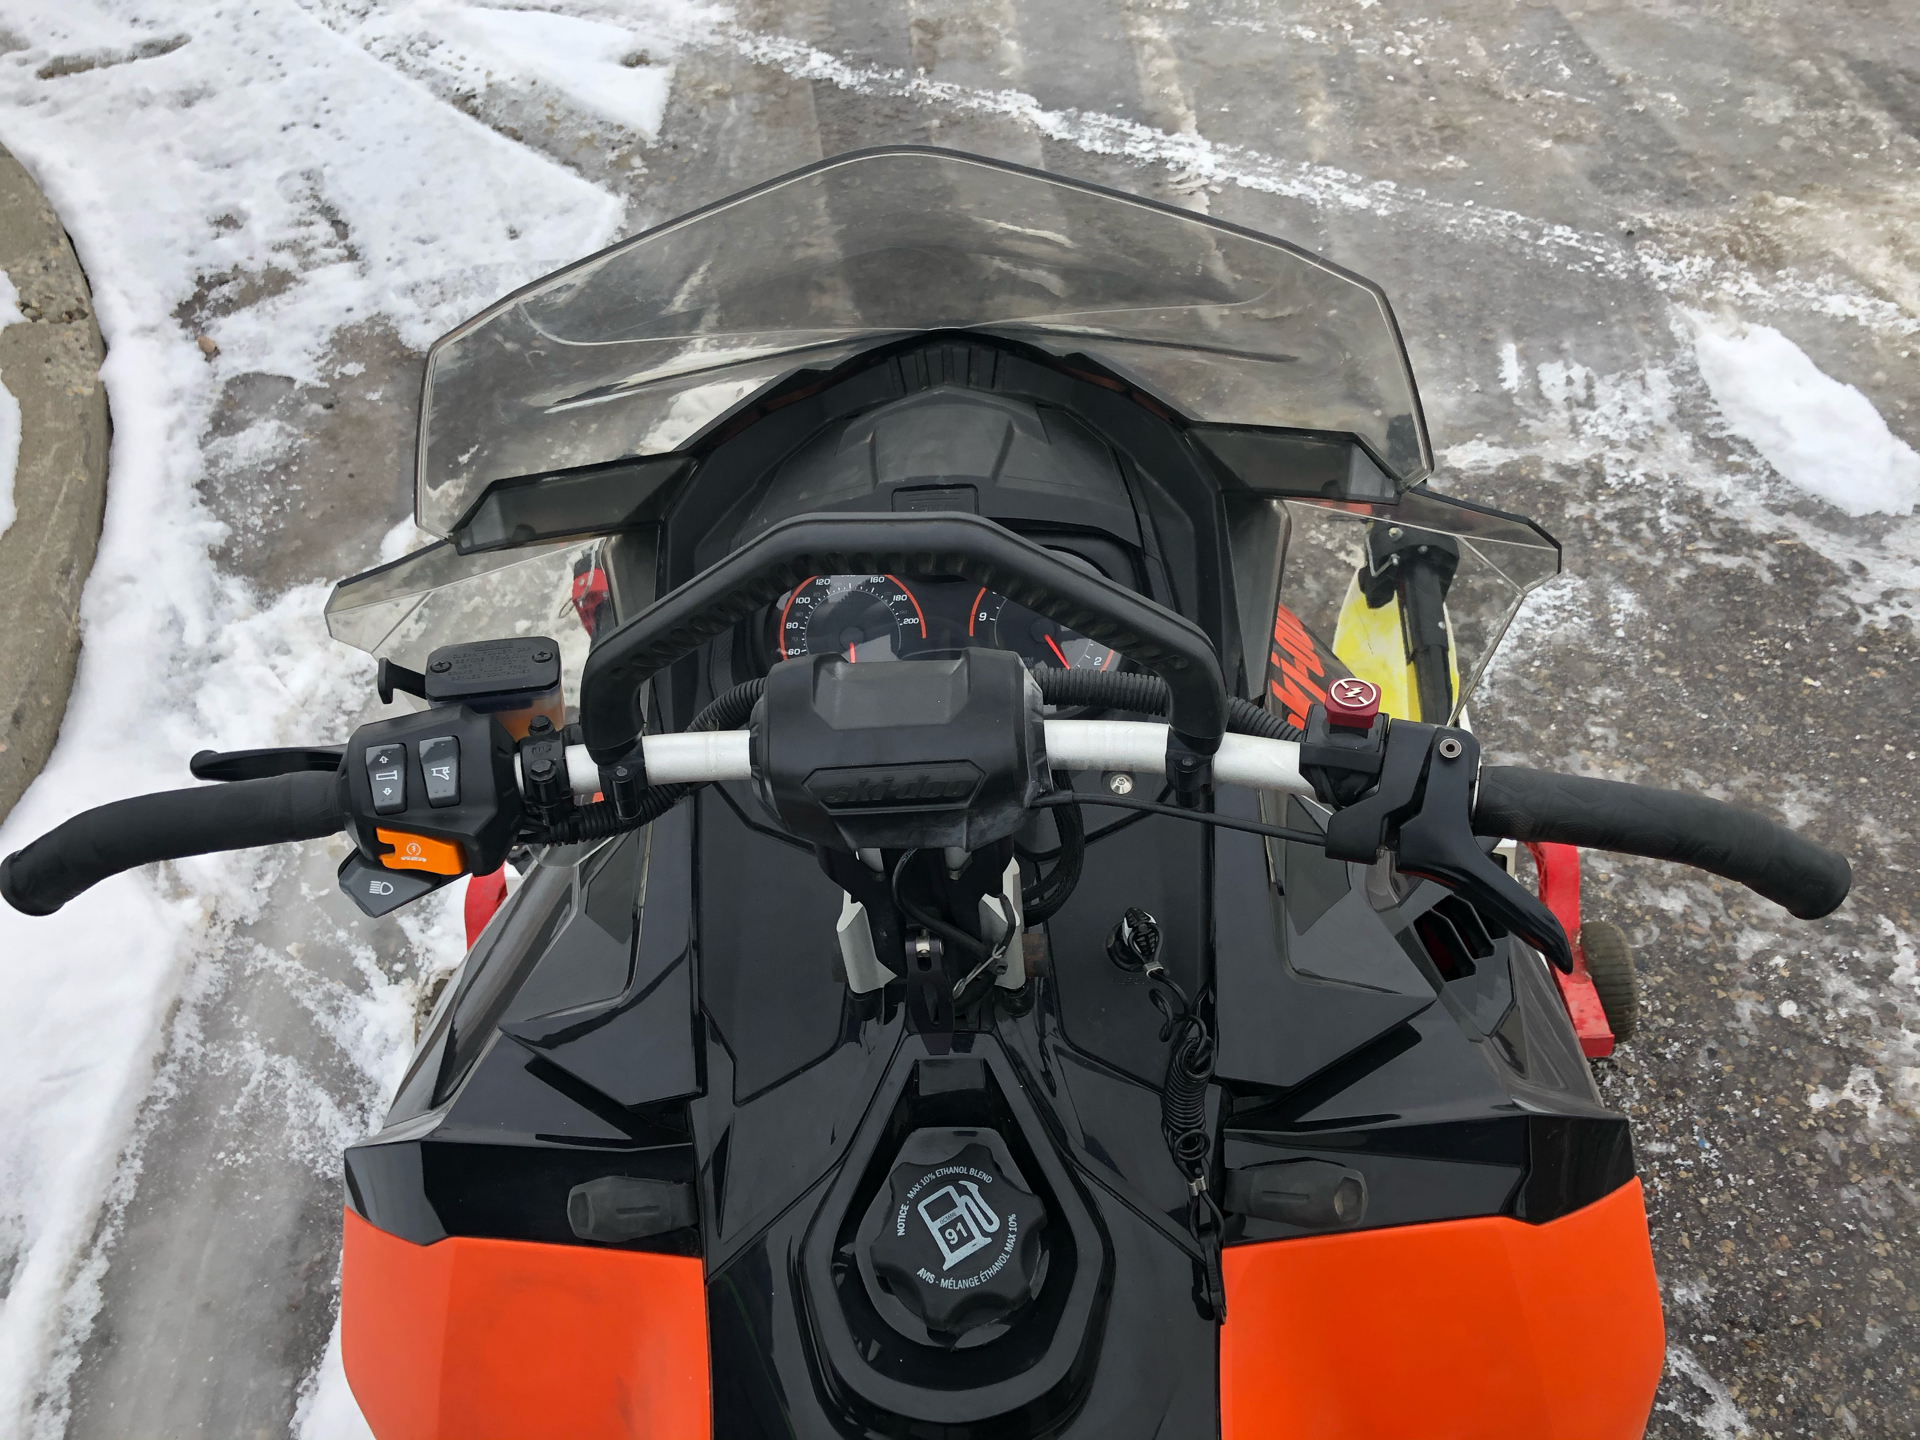 2016 Ski-Doo Renegade Backcountry 800R E-TEC in Bismarck, North Dakota - Photo 8